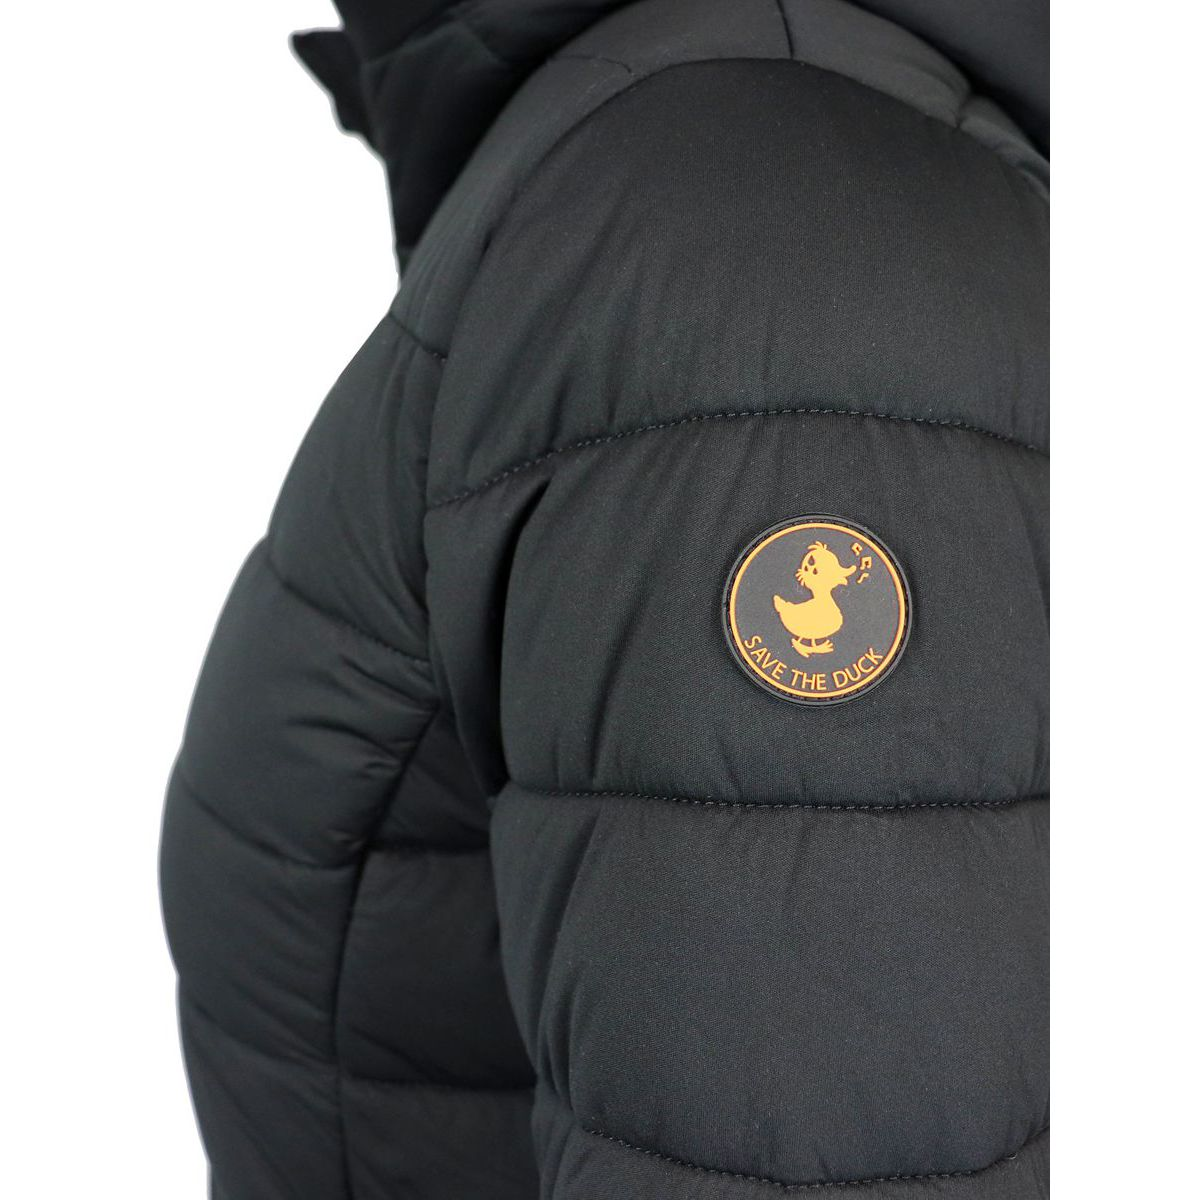 Long down jacket with hood Black Save the duck